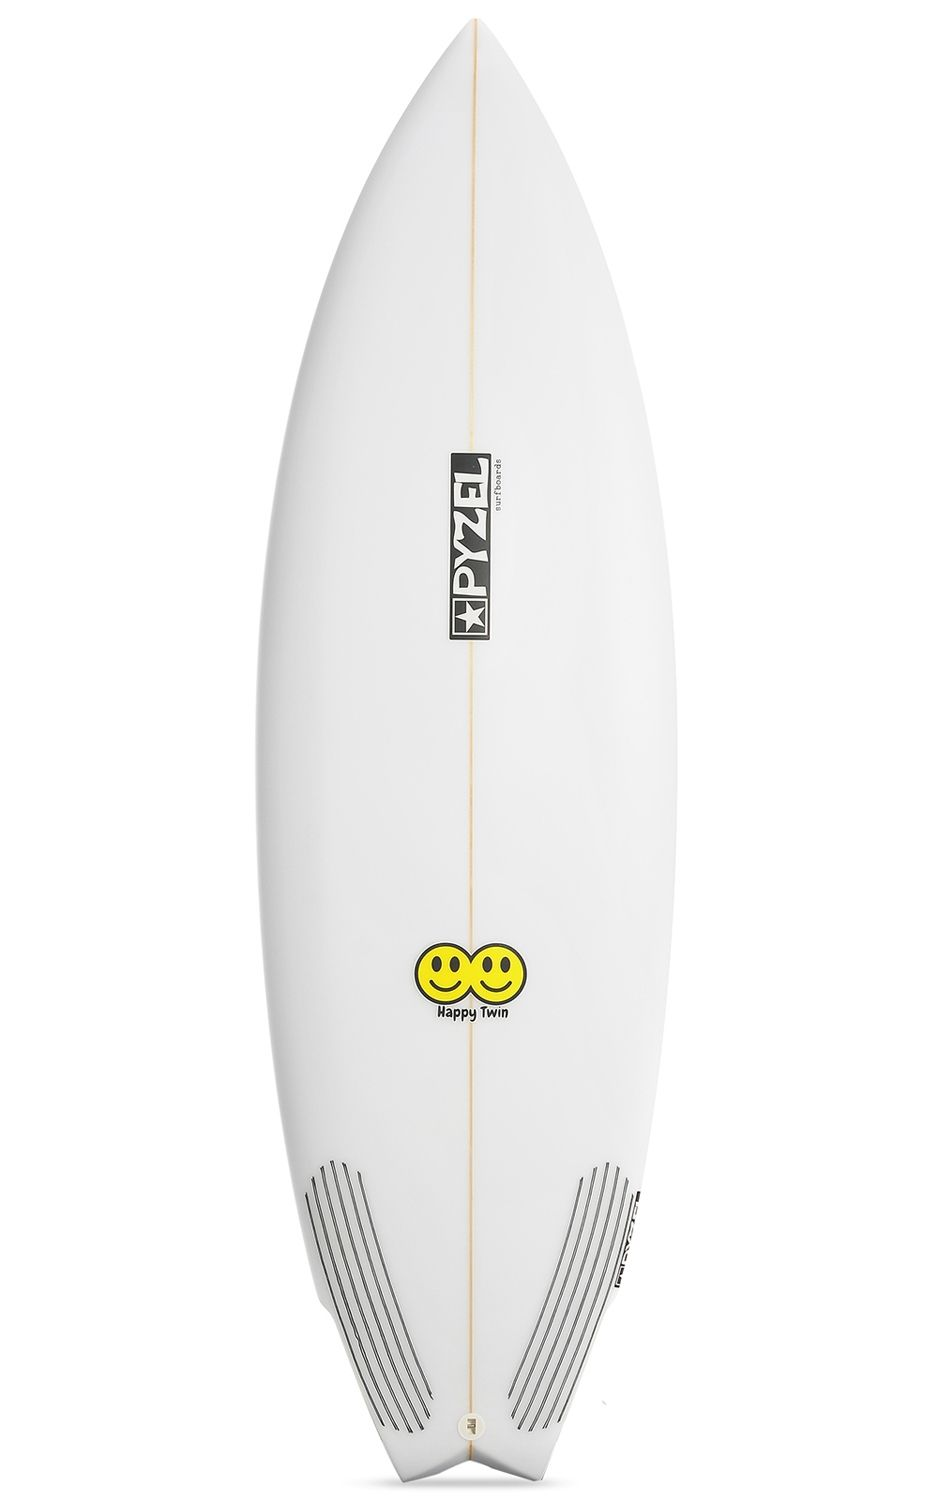 Prancha Surf Pyzel HAPPY TWIN Fish Tail - White FCS II 5ft6